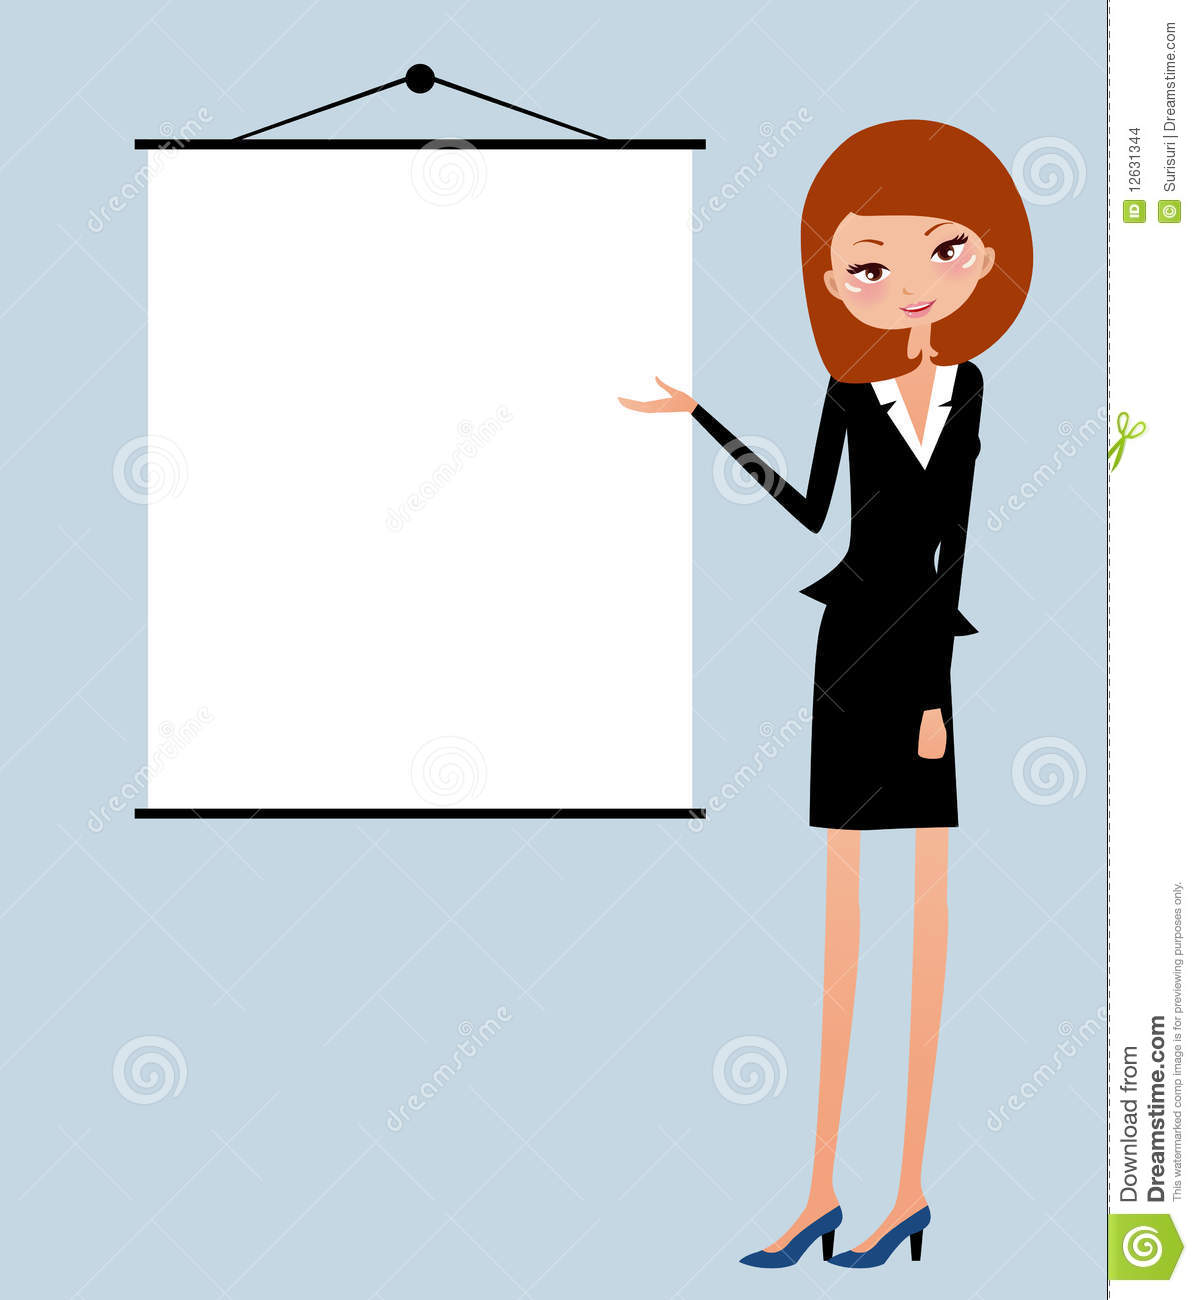 Office Lady Stock Images - Image: 12631344